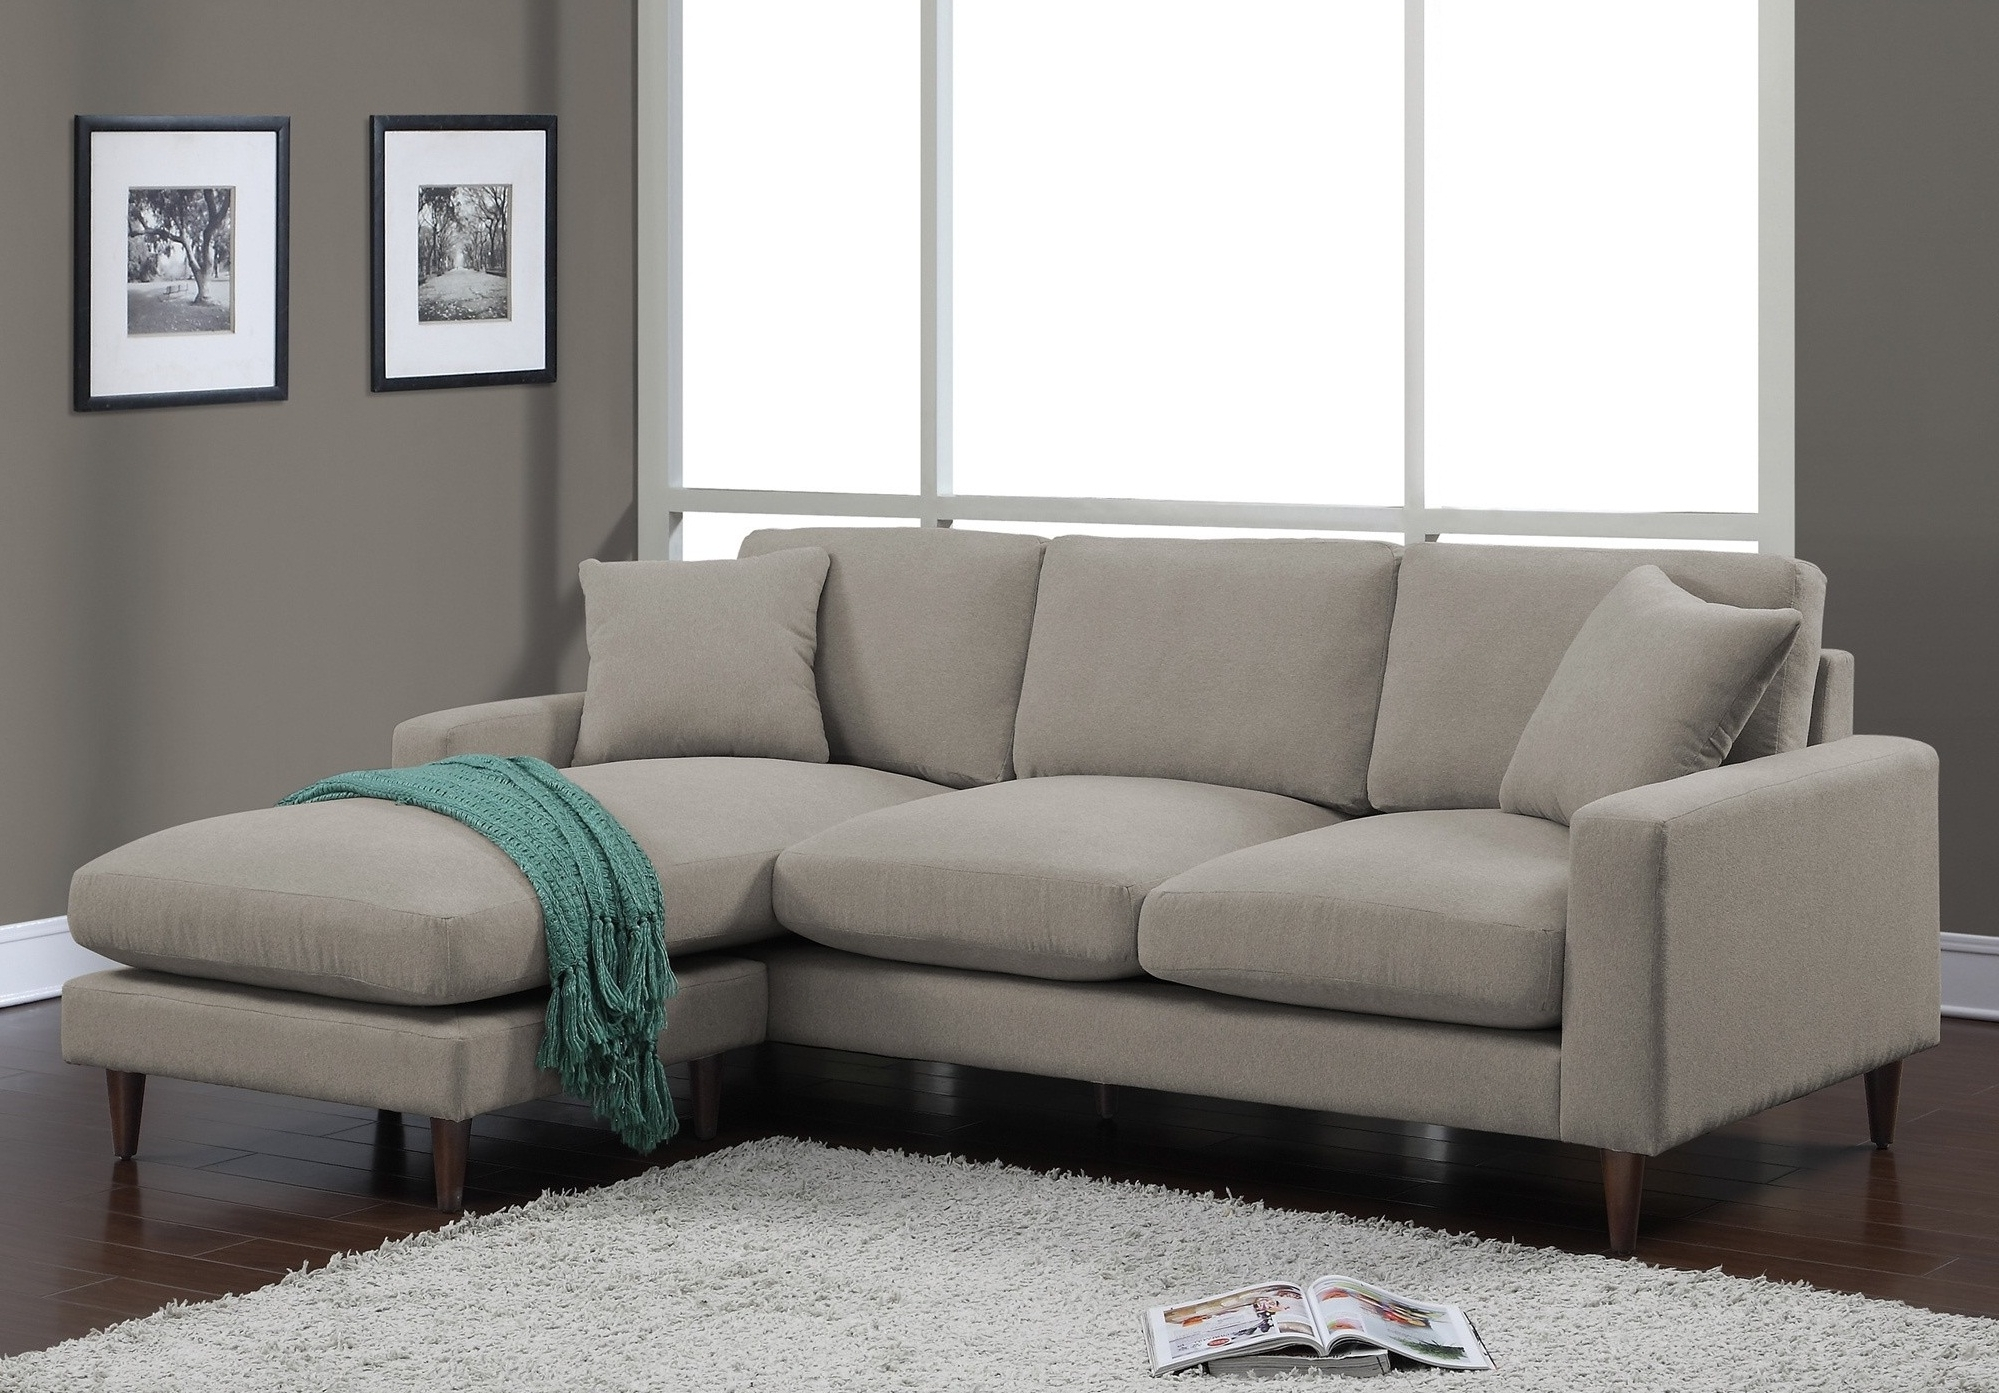 Lovable Sleeper Sofa With Chaise Lounge Alluring Living Room With Regard To Well Liked Target Sectional Sofas (View 3 of 15)